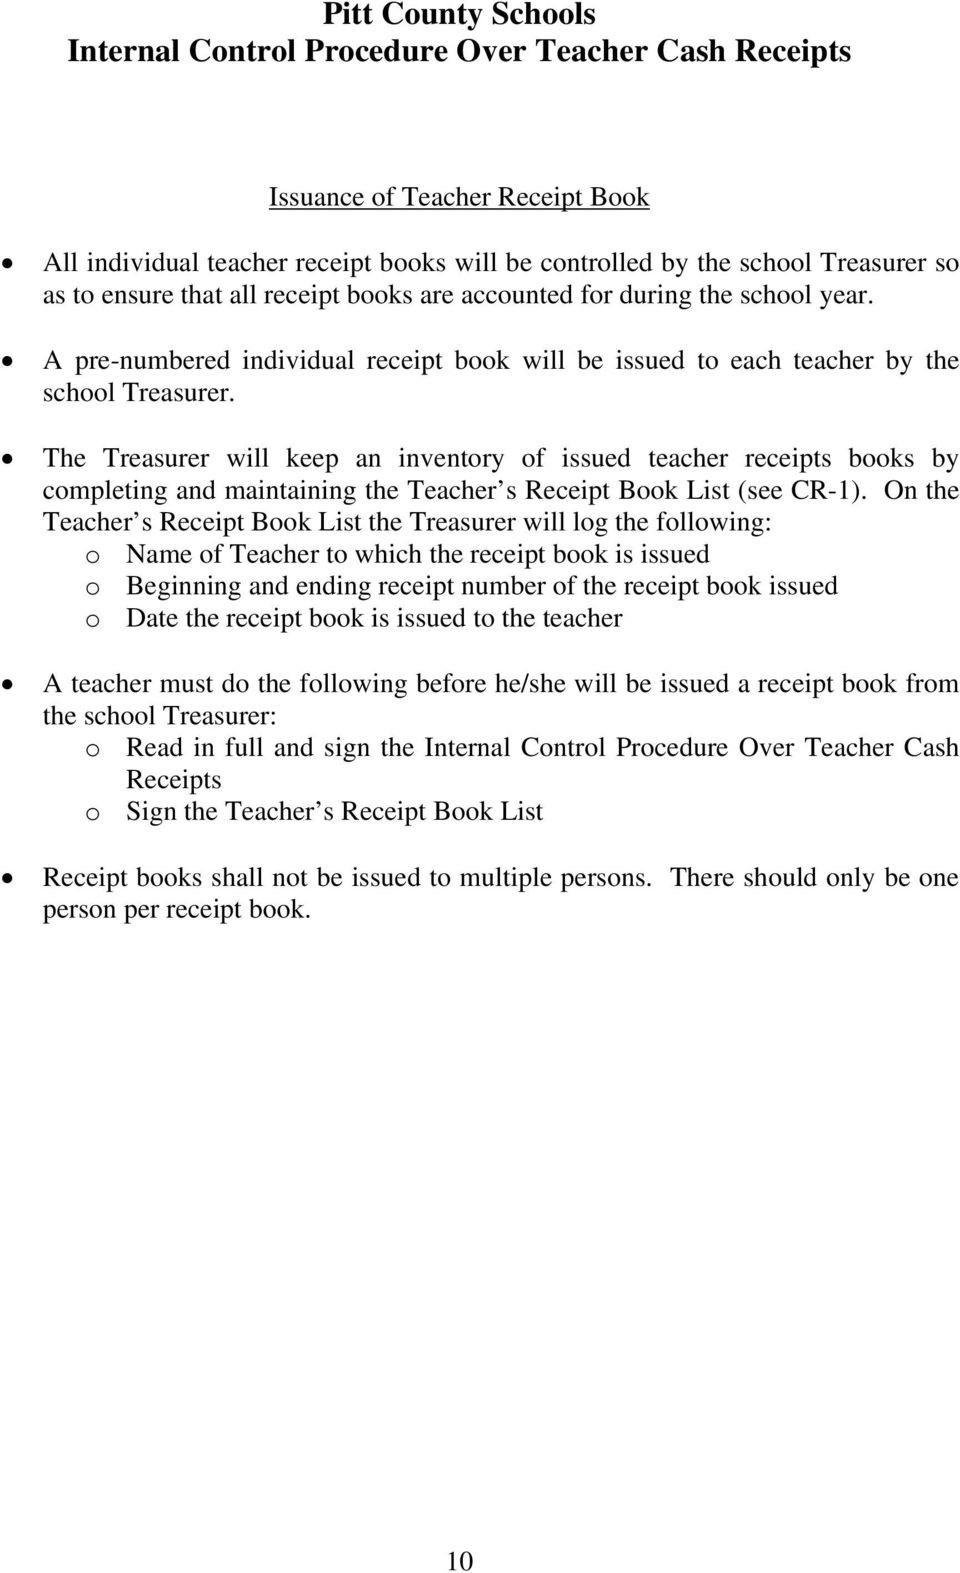 The Treasurer will keep an inventory of issued teacher receipts books by completing and maintaining the Teacher s Receipt Book List (see CR-1).